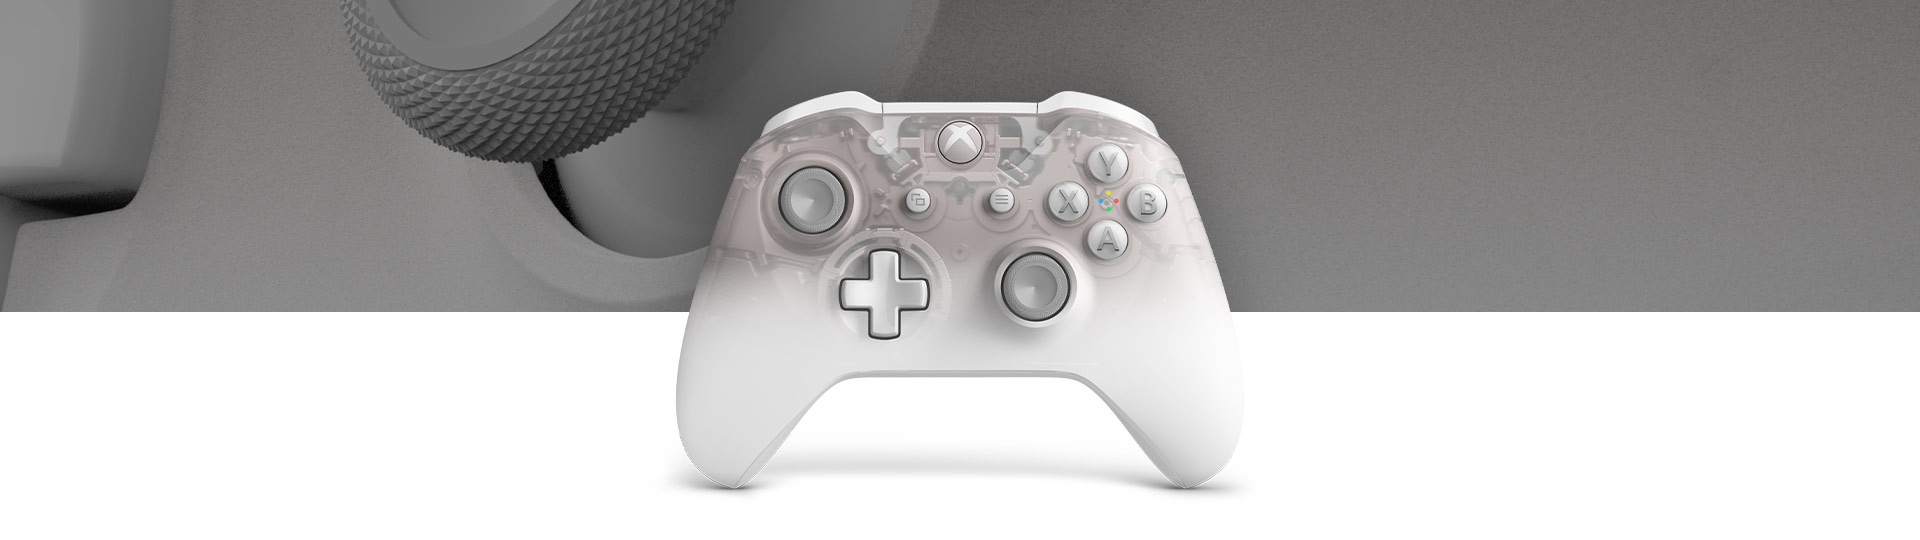 Front view of xbox wireless phantom white controller with a close-up of phantom white controller surface texture